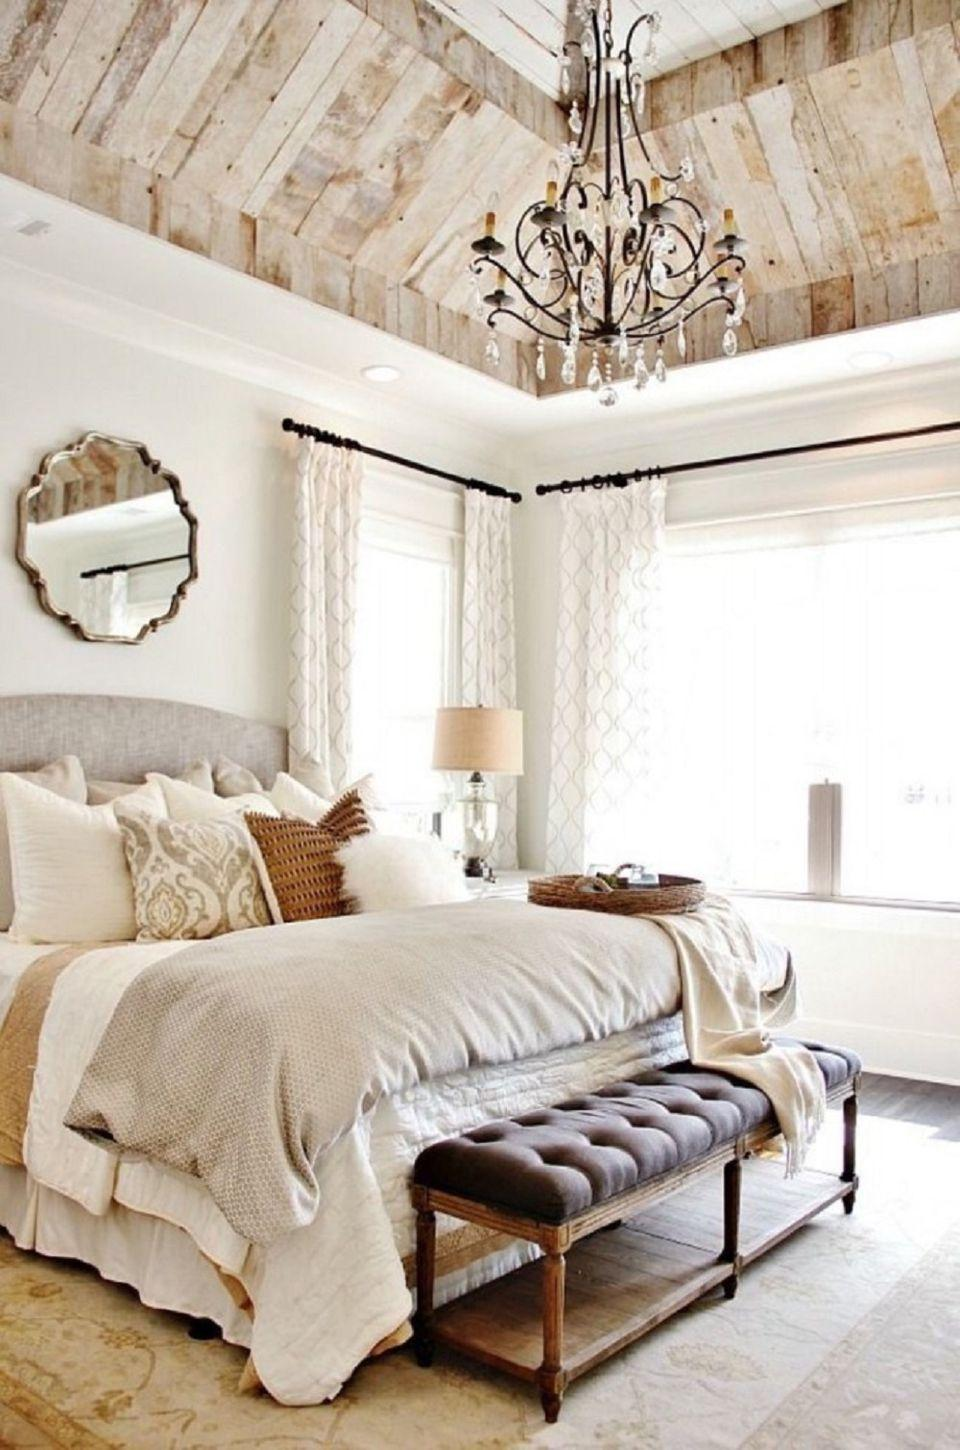 5 Easy French Country Bedroom Ideas Flourishmentary,Stylish Cat Furniture